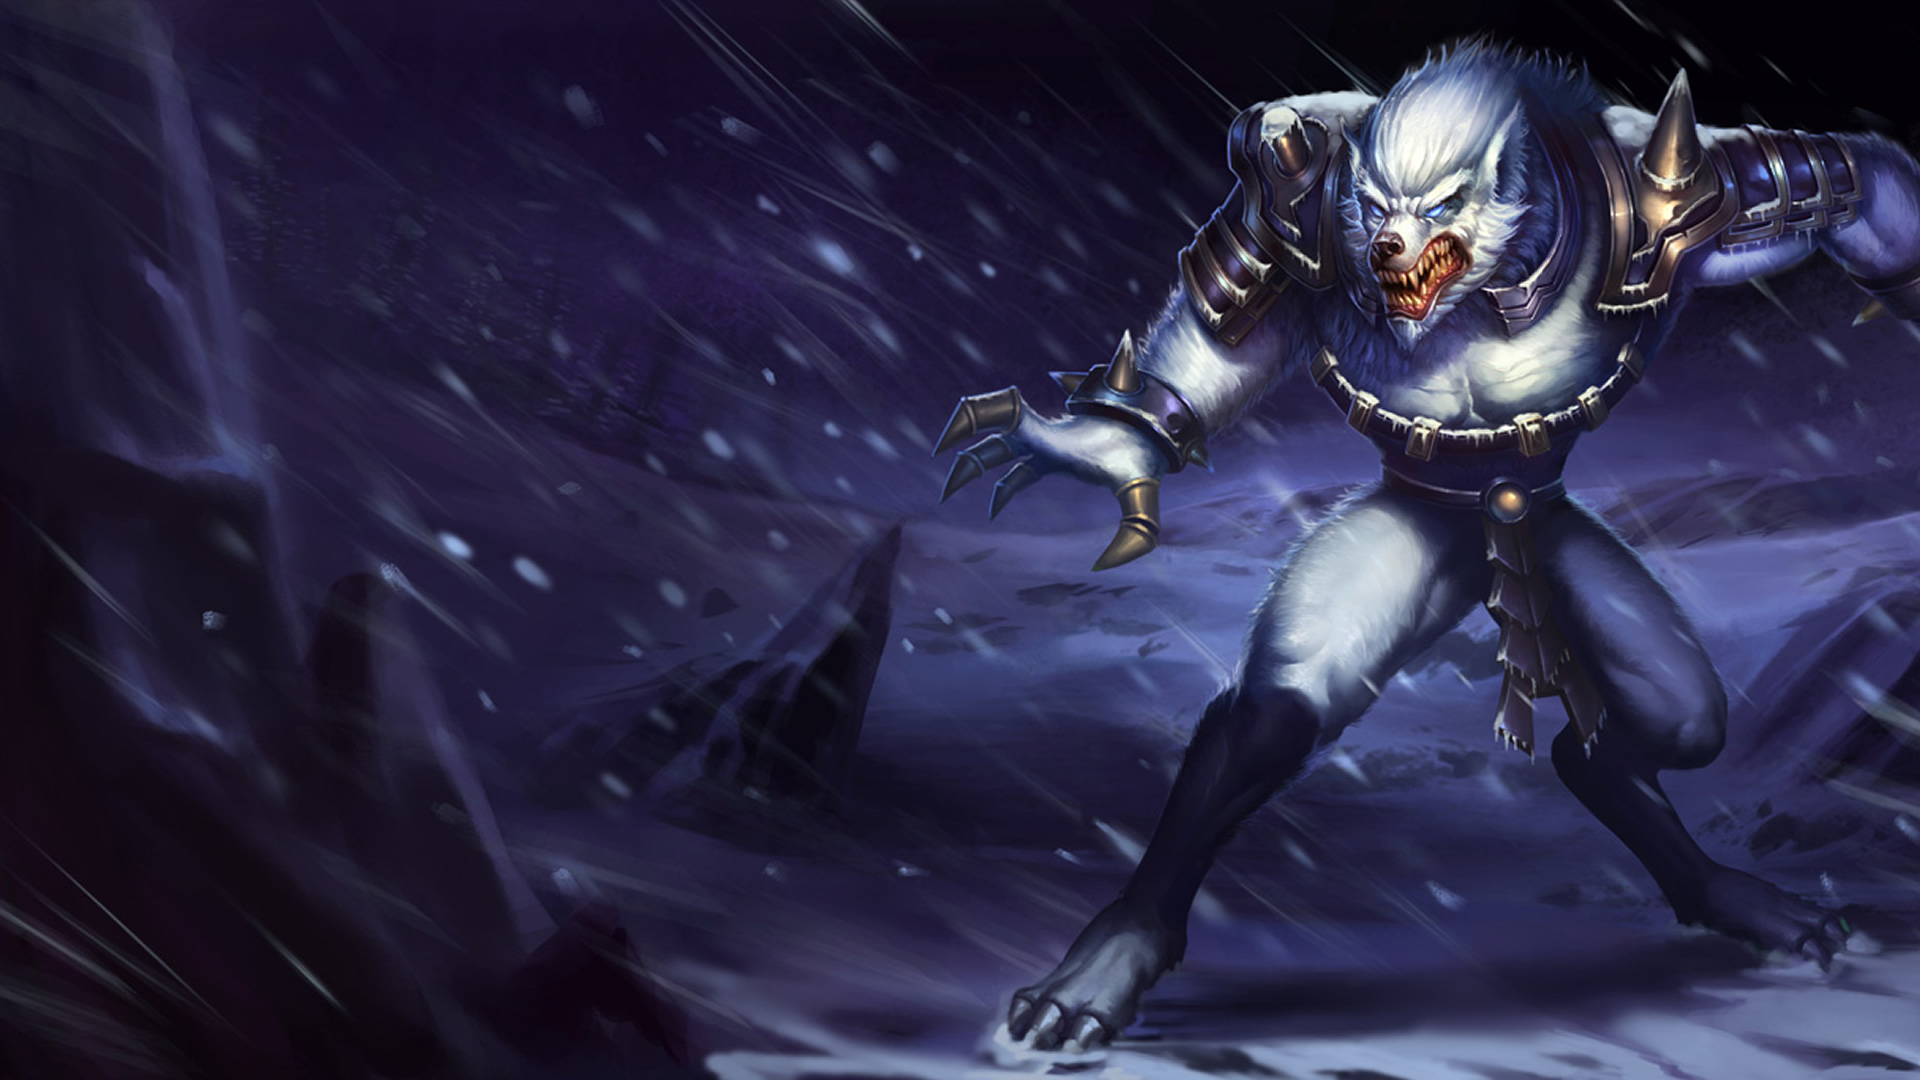 Nocturne Wallpaper Hd Tundra Hunter Warwick Chinese League Of Legends Wallpapers